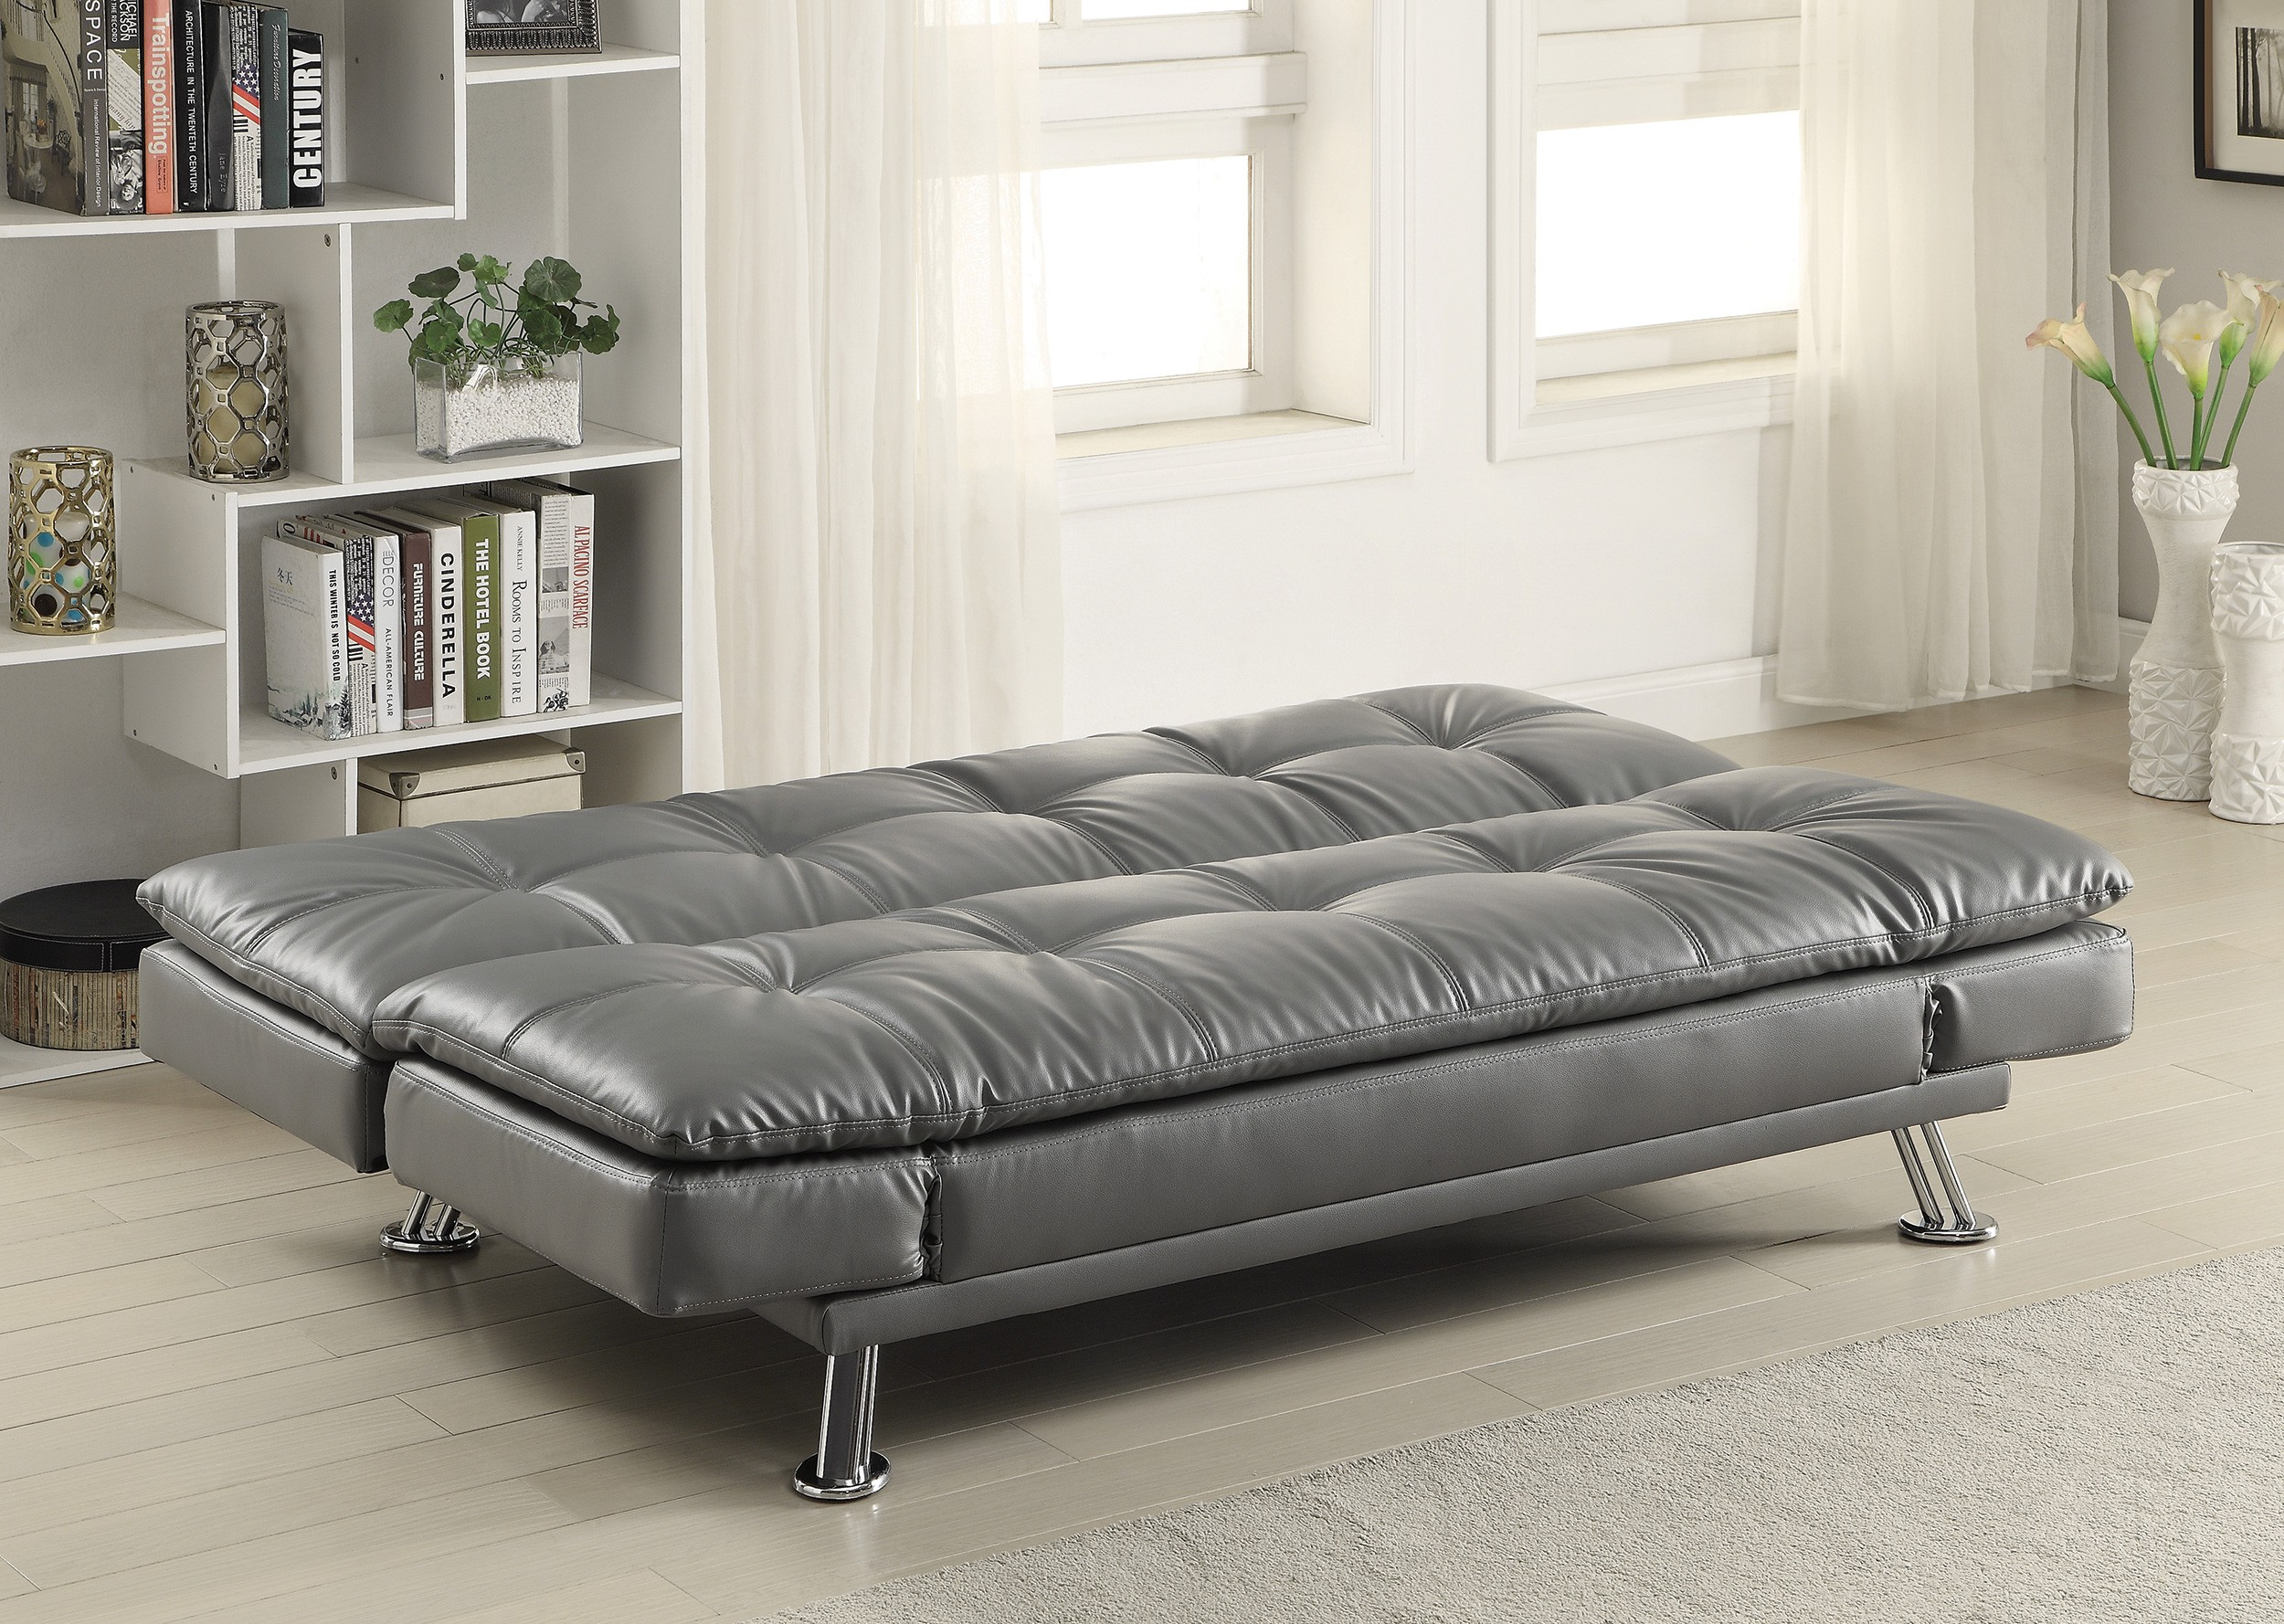 Chaise C Discount Sofa Bed Grey With Available Matching Chaise And Storage